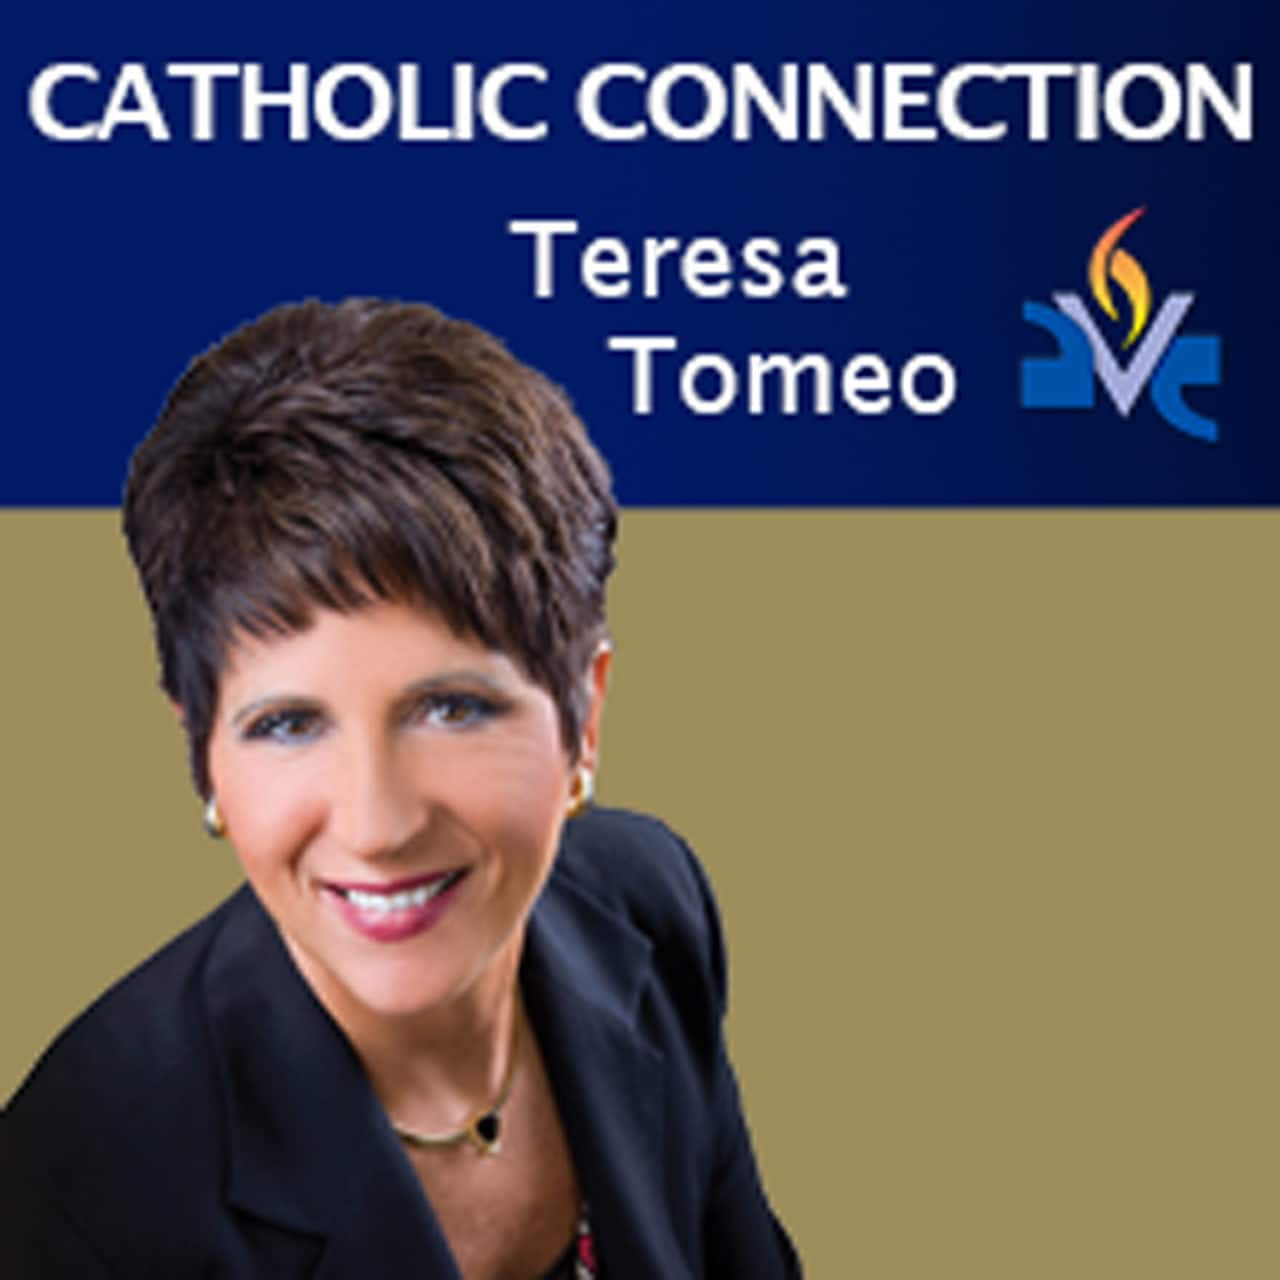 Ave Maria Radio: Catholic Connection